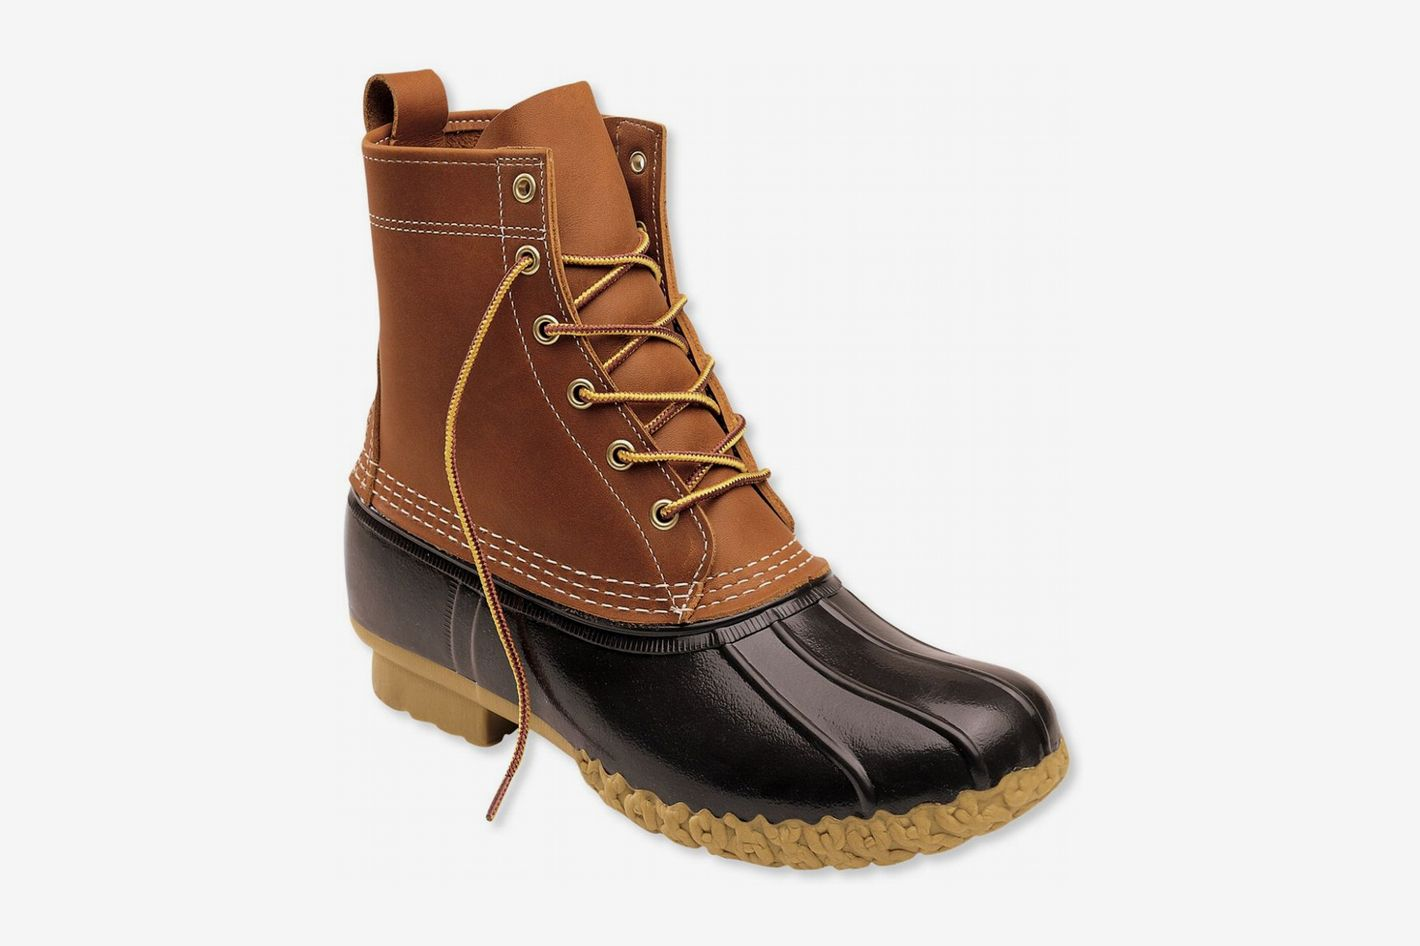 The Original L.L.Bean Boot